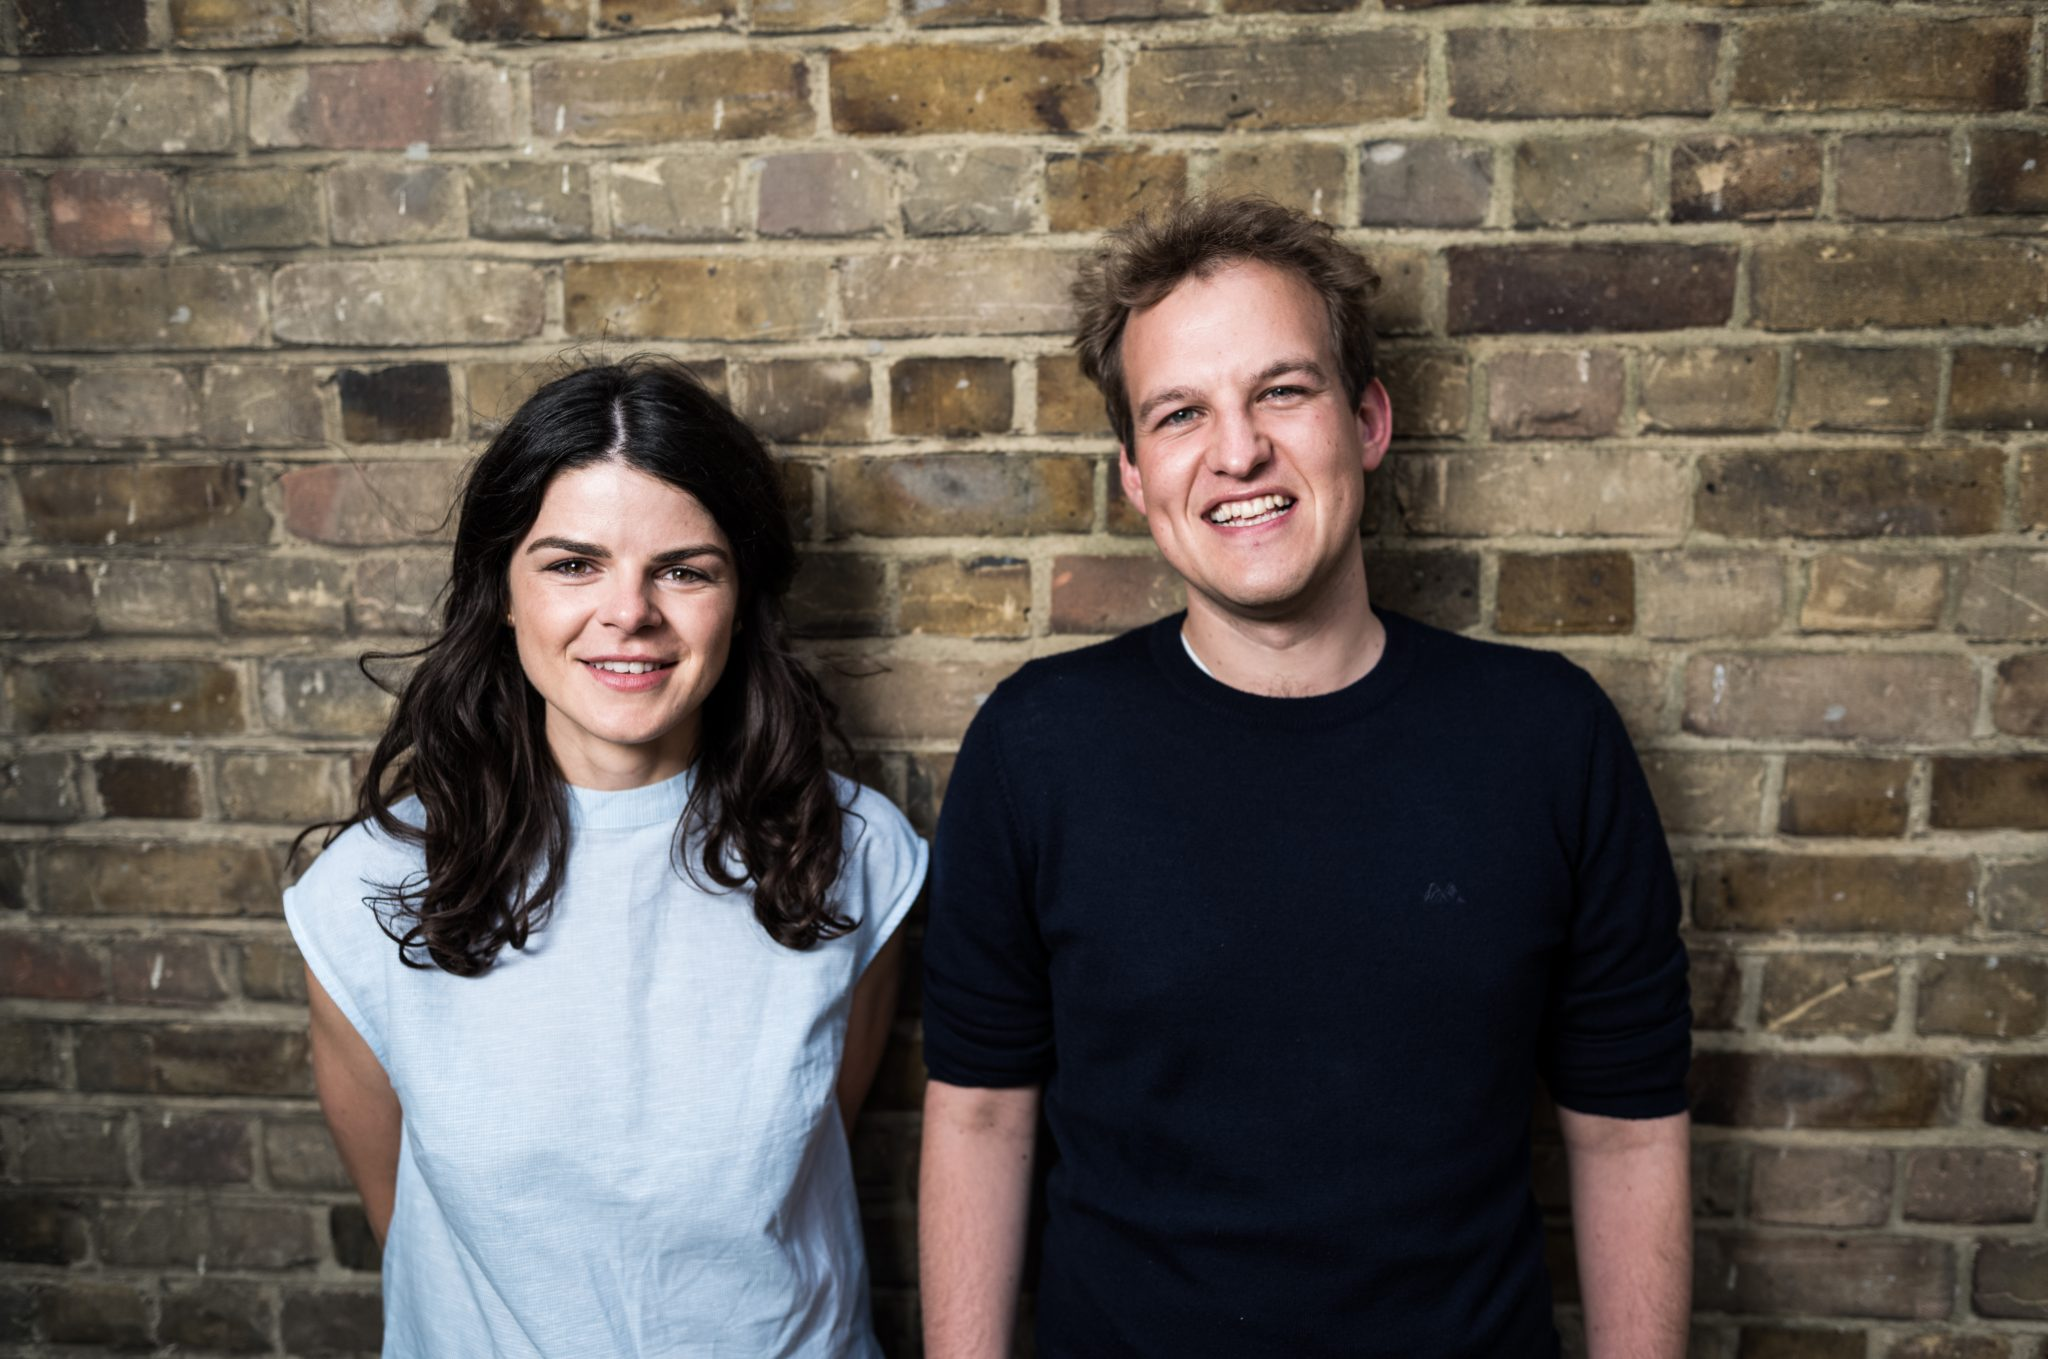 Entrepreneur First co-founders, Alice Bentinck and Matt Clifford